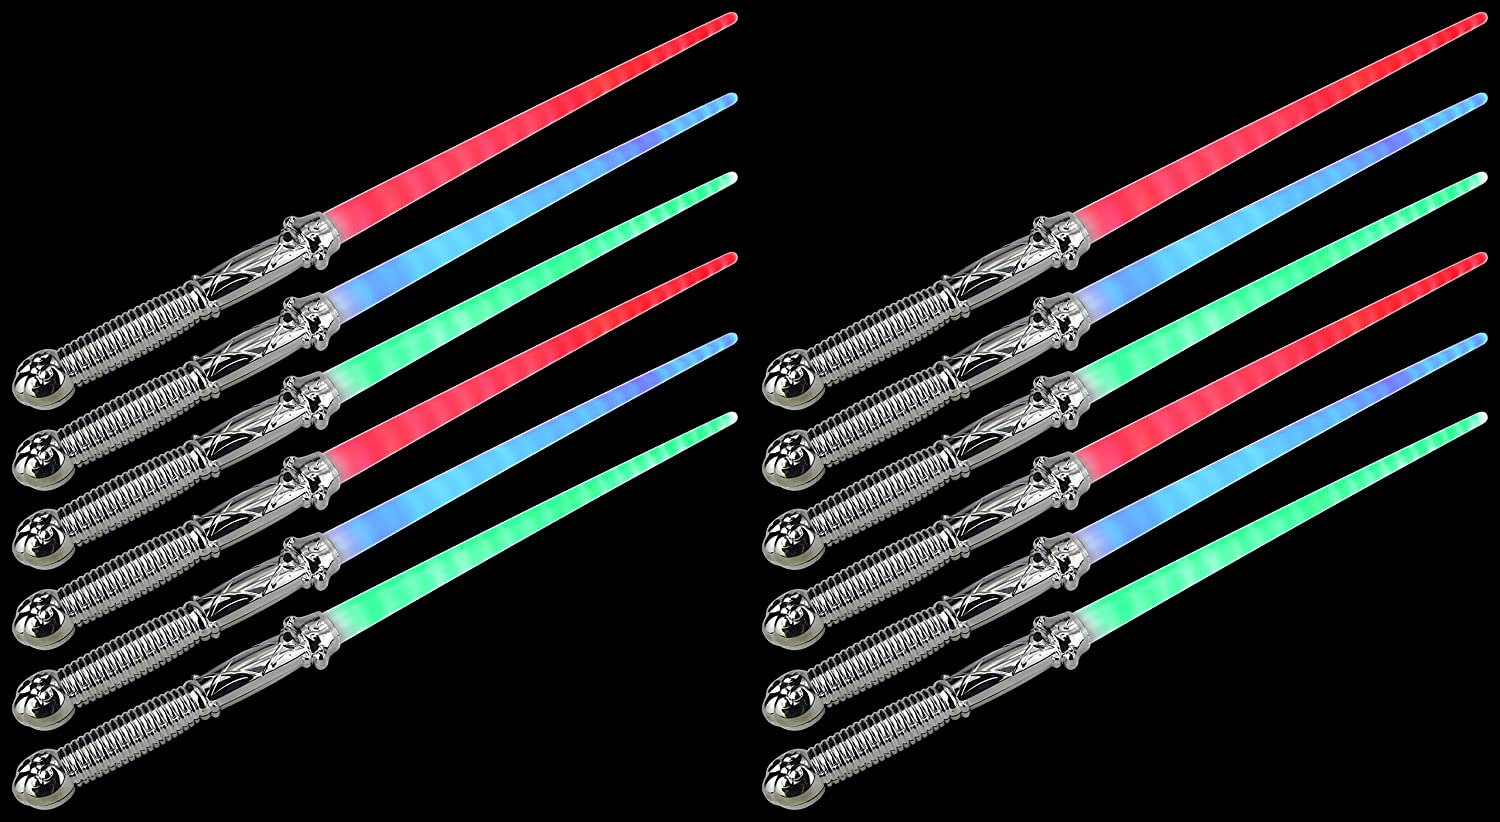 Set Of 12 Vt Solid Chrome Star Led Light Up Party Favor Toy Amazoncom Science Wiz Cool Circuits Toys Games Sword Sabers